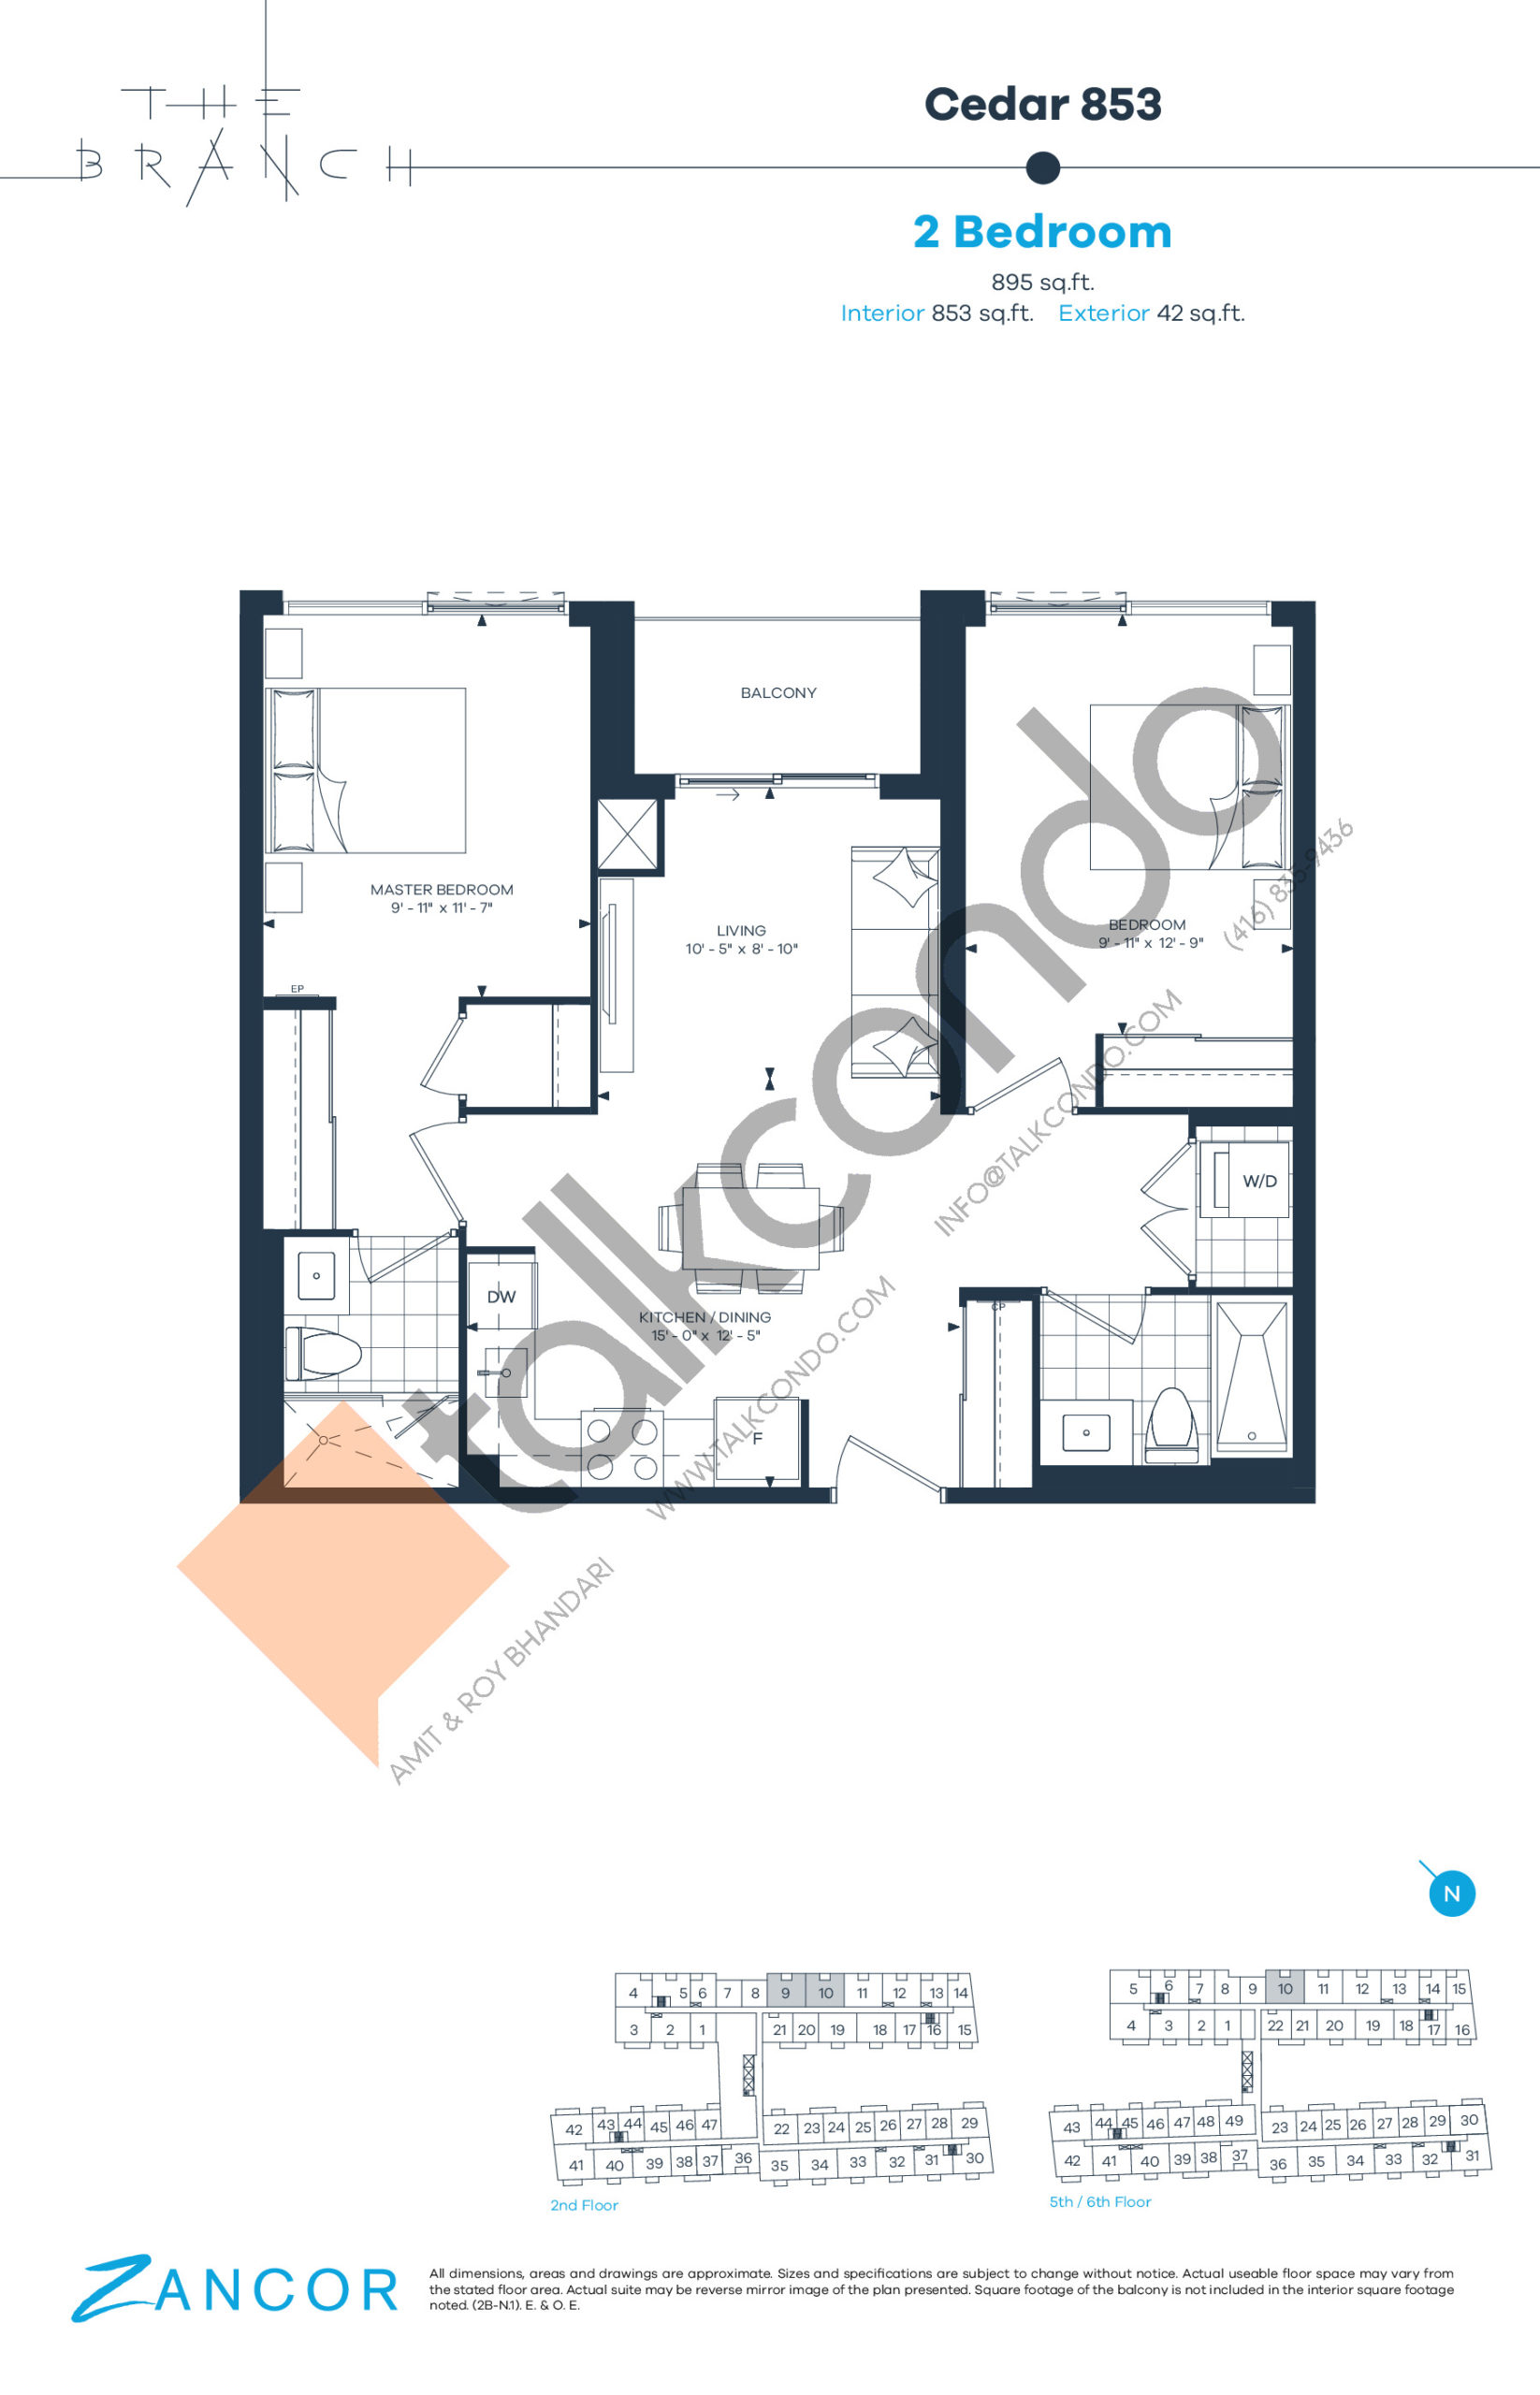 Cedar 853 Floor Plan at The Branch Condos - 853 sq.ft